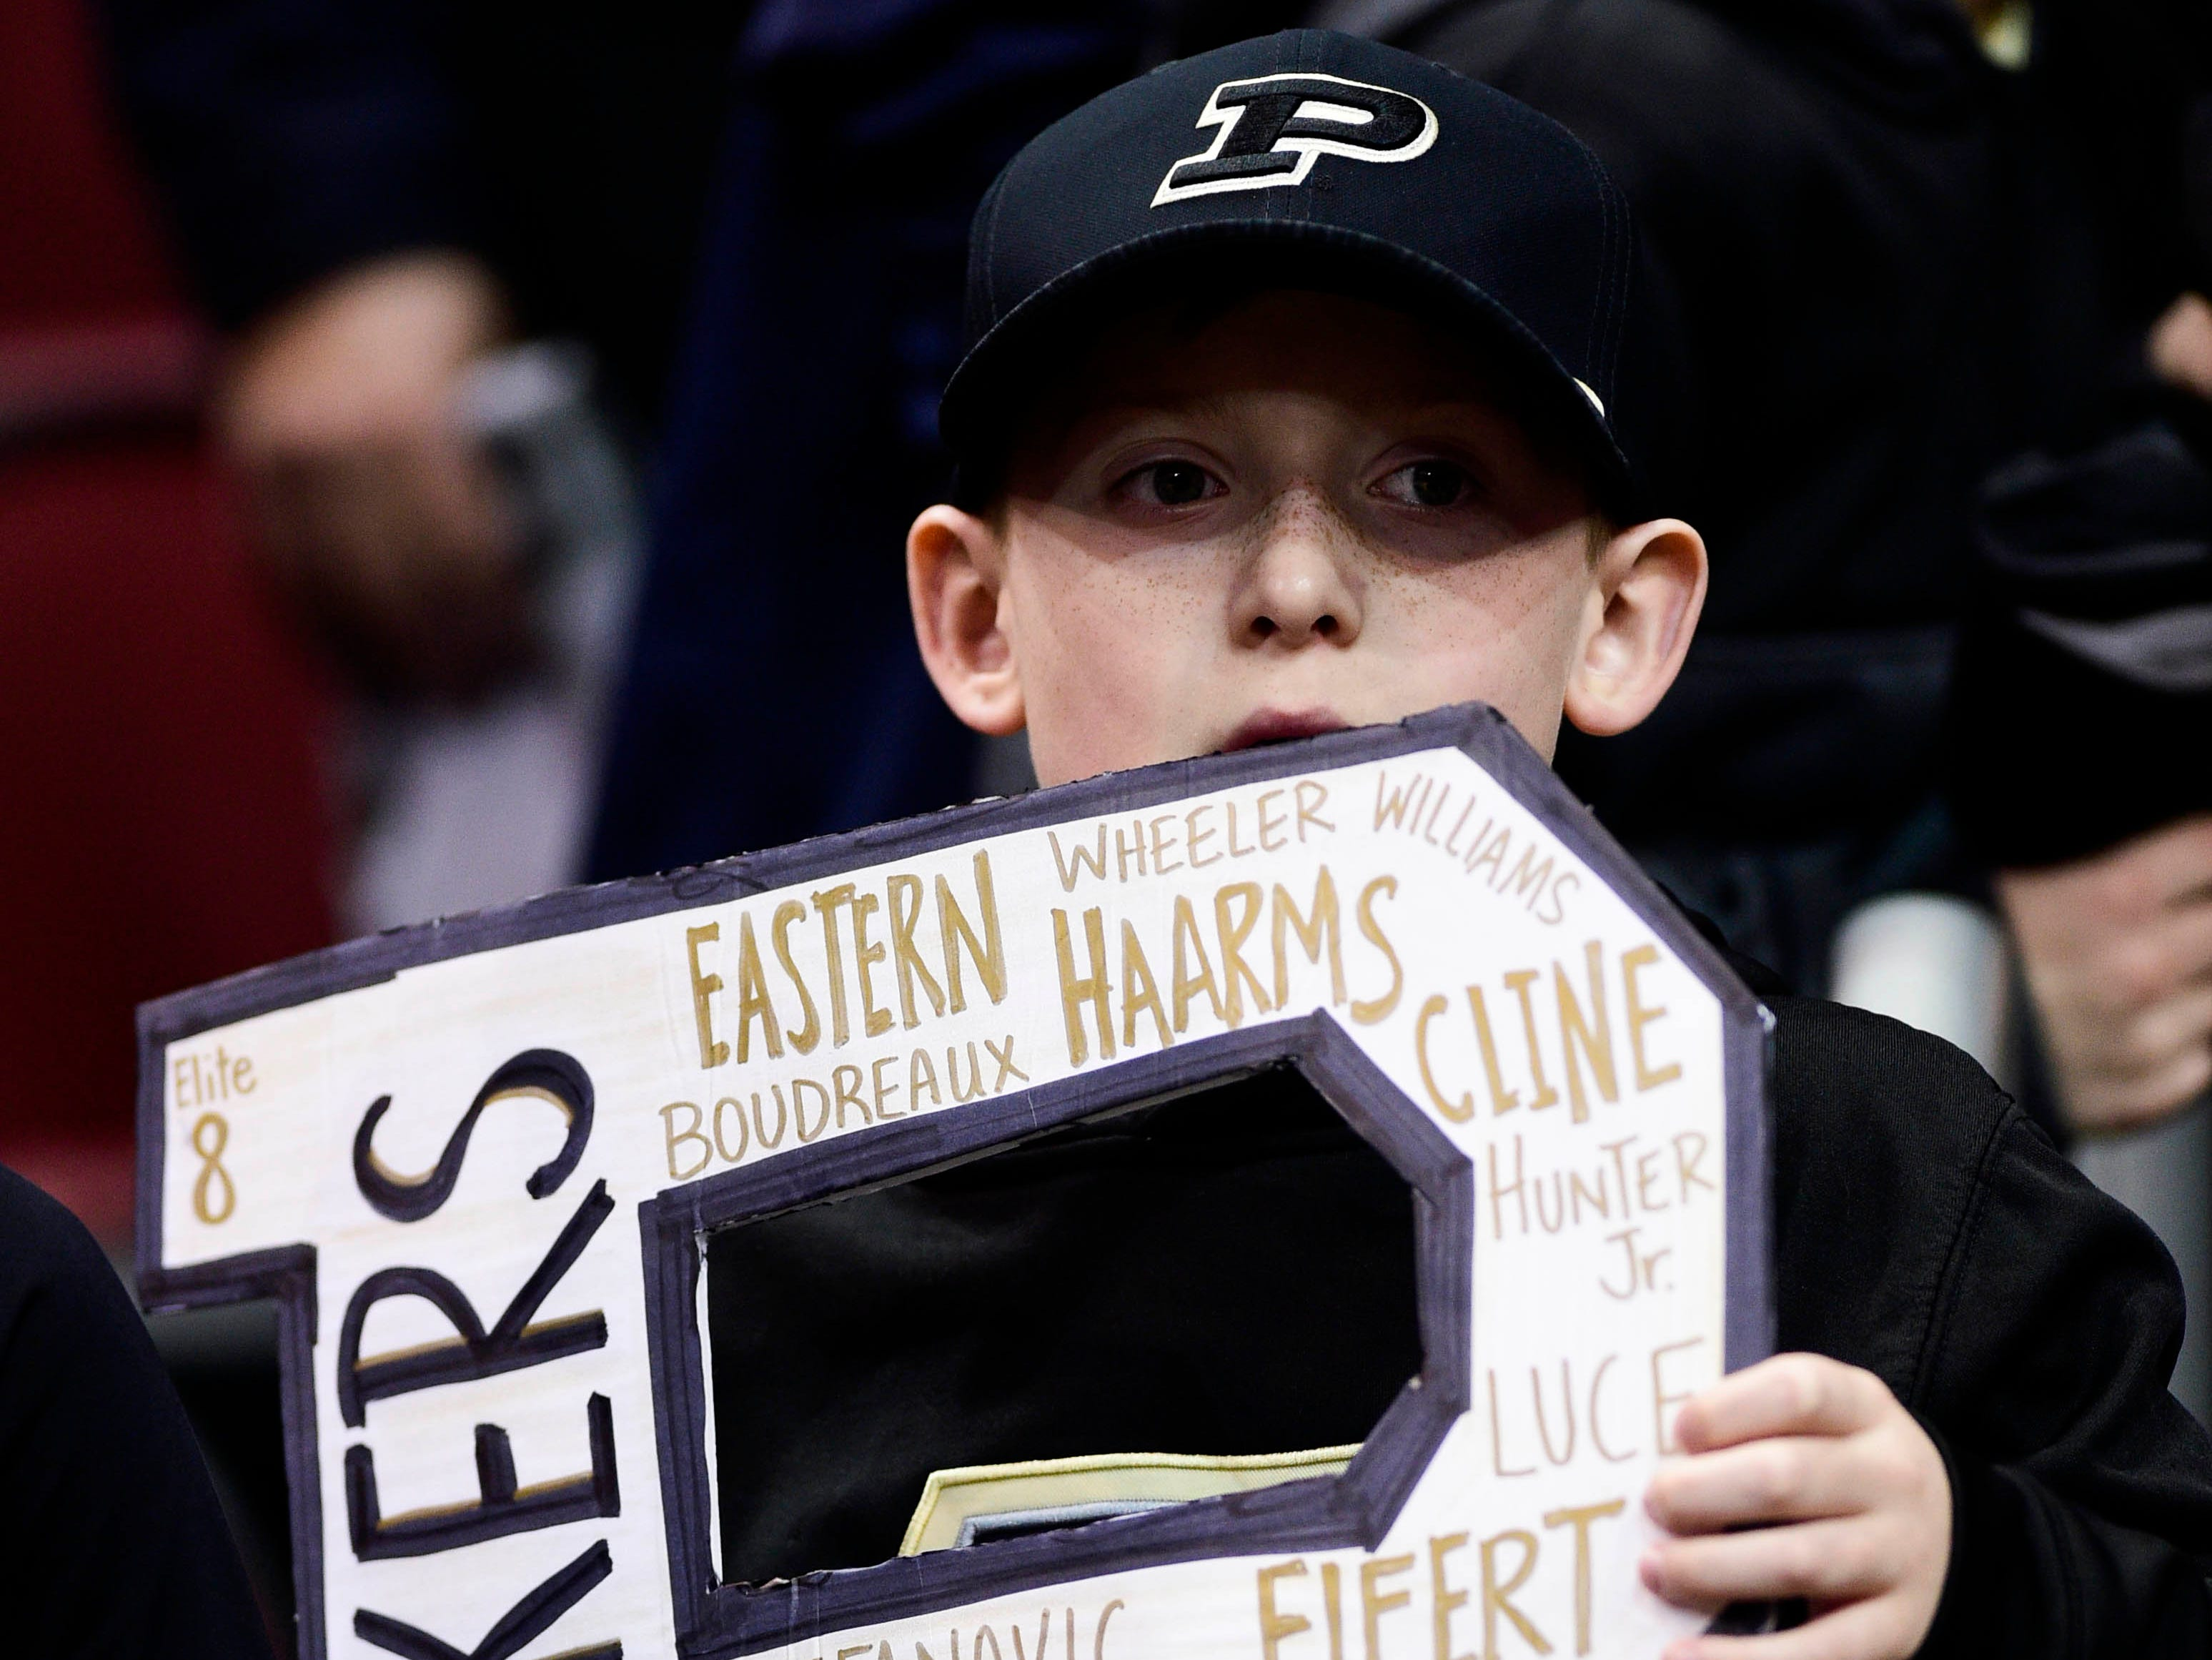 Mar 30, 2019; Louisville, KY, United States; Purdue Boilermakers fan holds a sign before the game against the Virginia Cavaliers in the championship game of the south regional of the 2019 NCAA Tournament at KFC Yum Center. Mandatory Credit: Thomas J. Russo-USA TODAY Sports